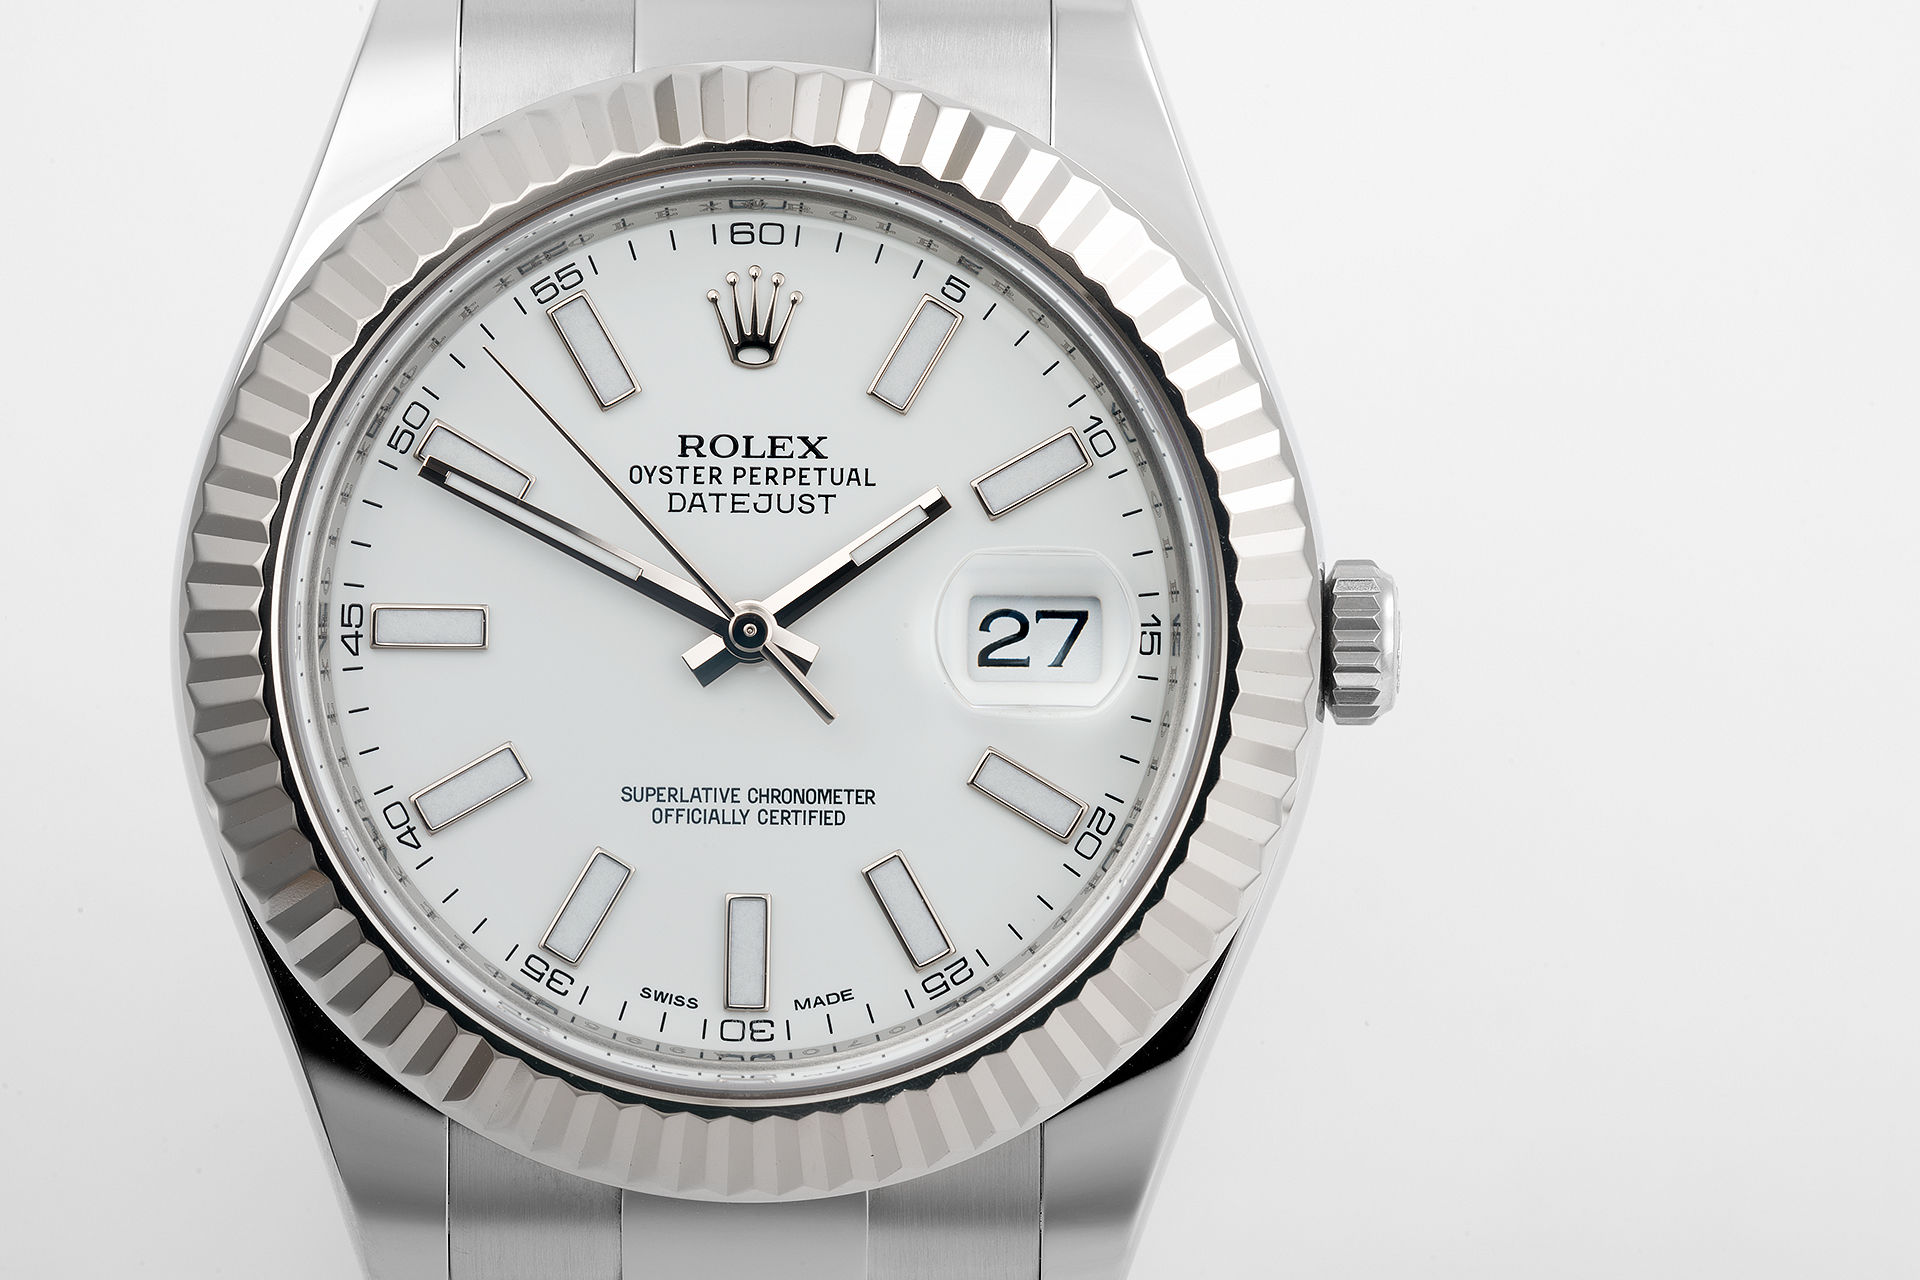 ref 116334 | 'Full Set' - Rolex Warranty | Rolex Datejust II